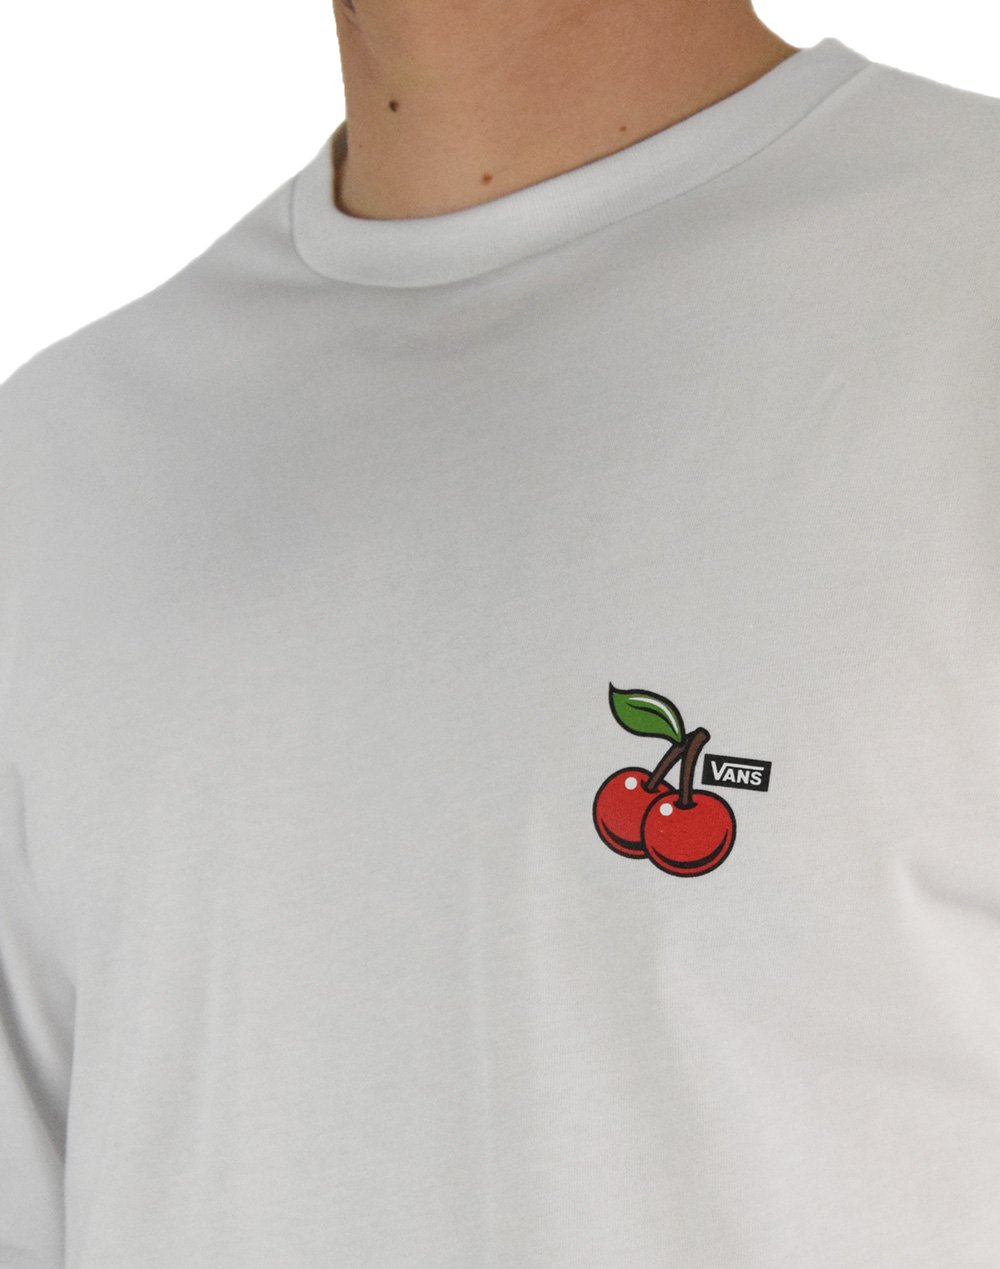 Vans Cherries Tee (VN0A49QOWHT1) White